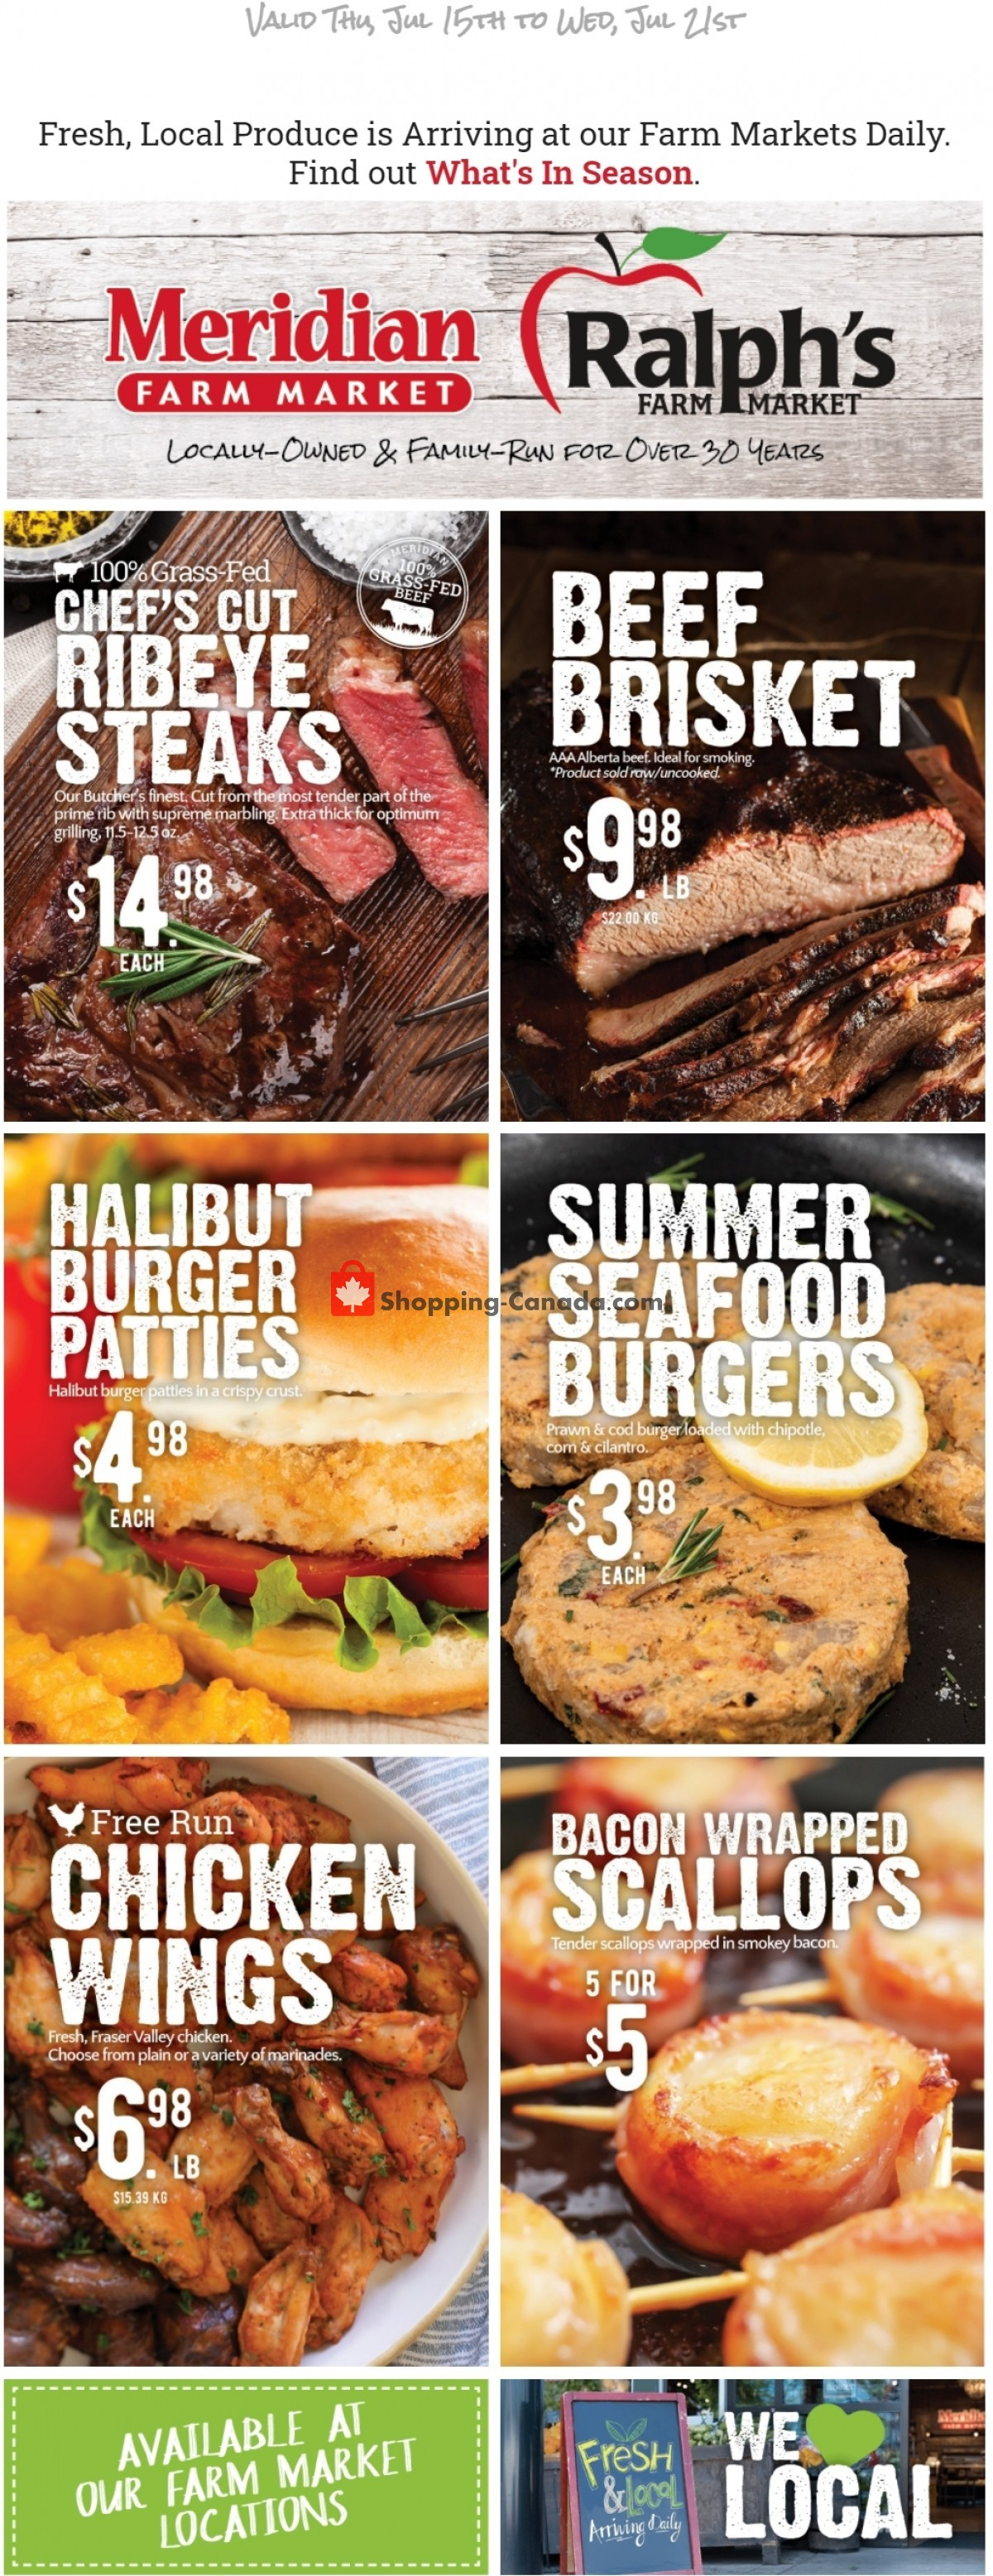 Flyer Meridian Meats & Meridian Farm Market Canada - from Thursday July 15, 2021 to Wednesday July 21, 2021